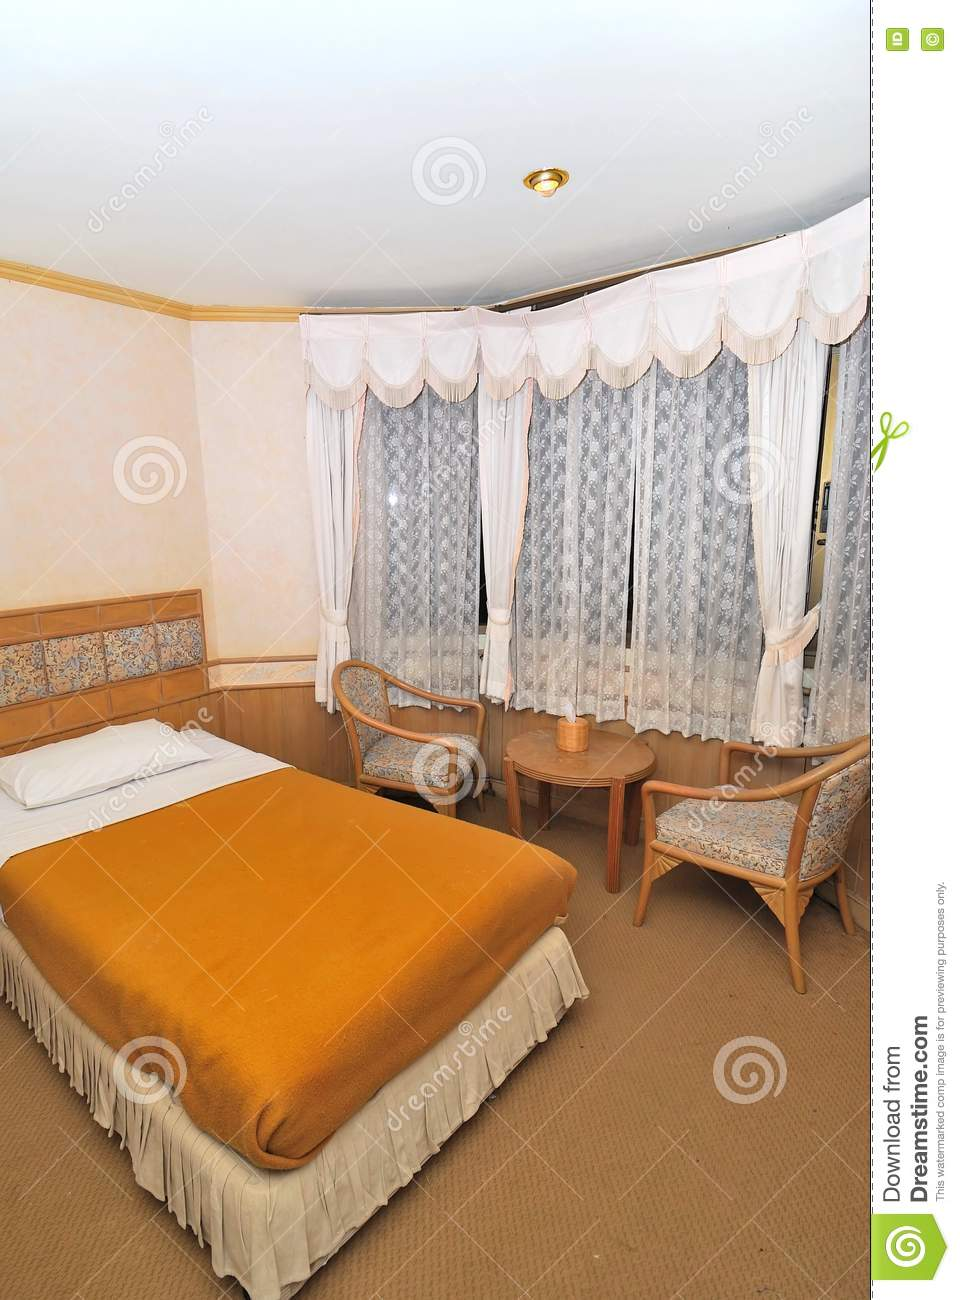 Hotel Room Furniture: Single Bed In Hotel Room With Furniture Stock Photo